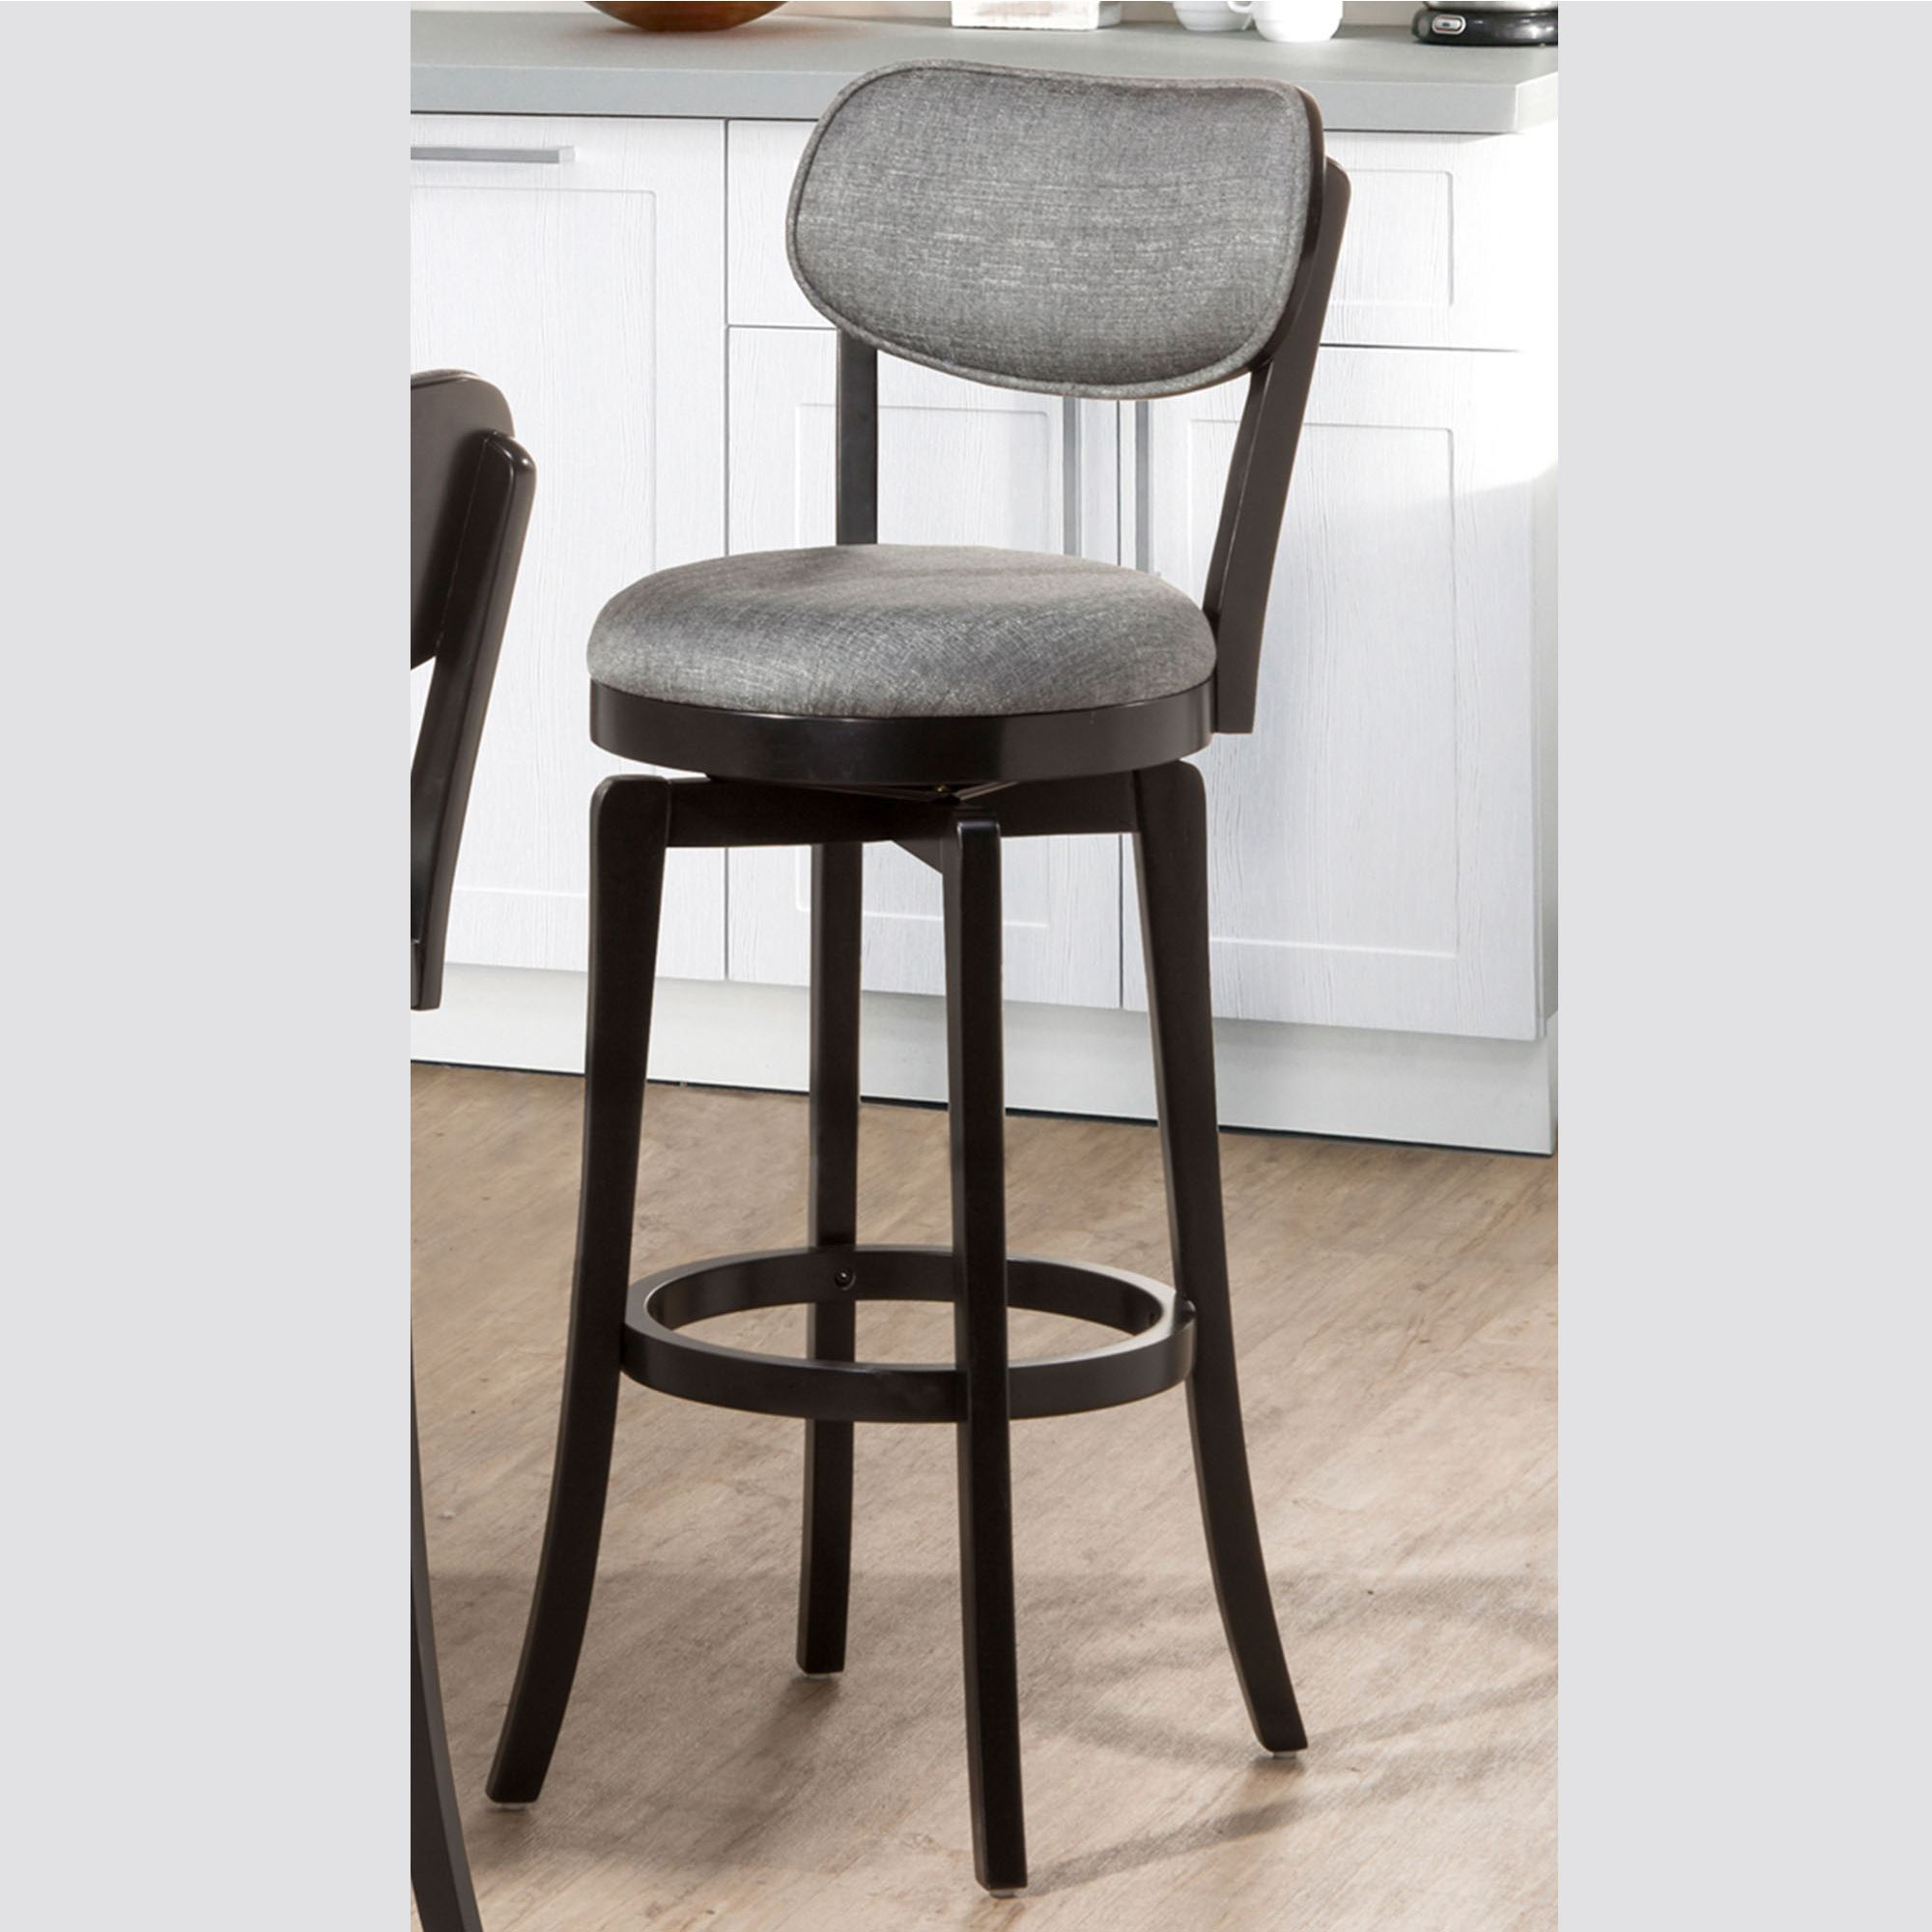 of sets backs black upper rotating target with at variety stool gray swivel round look step charming back circle gorgeous metal under red a bar folding stools furniture